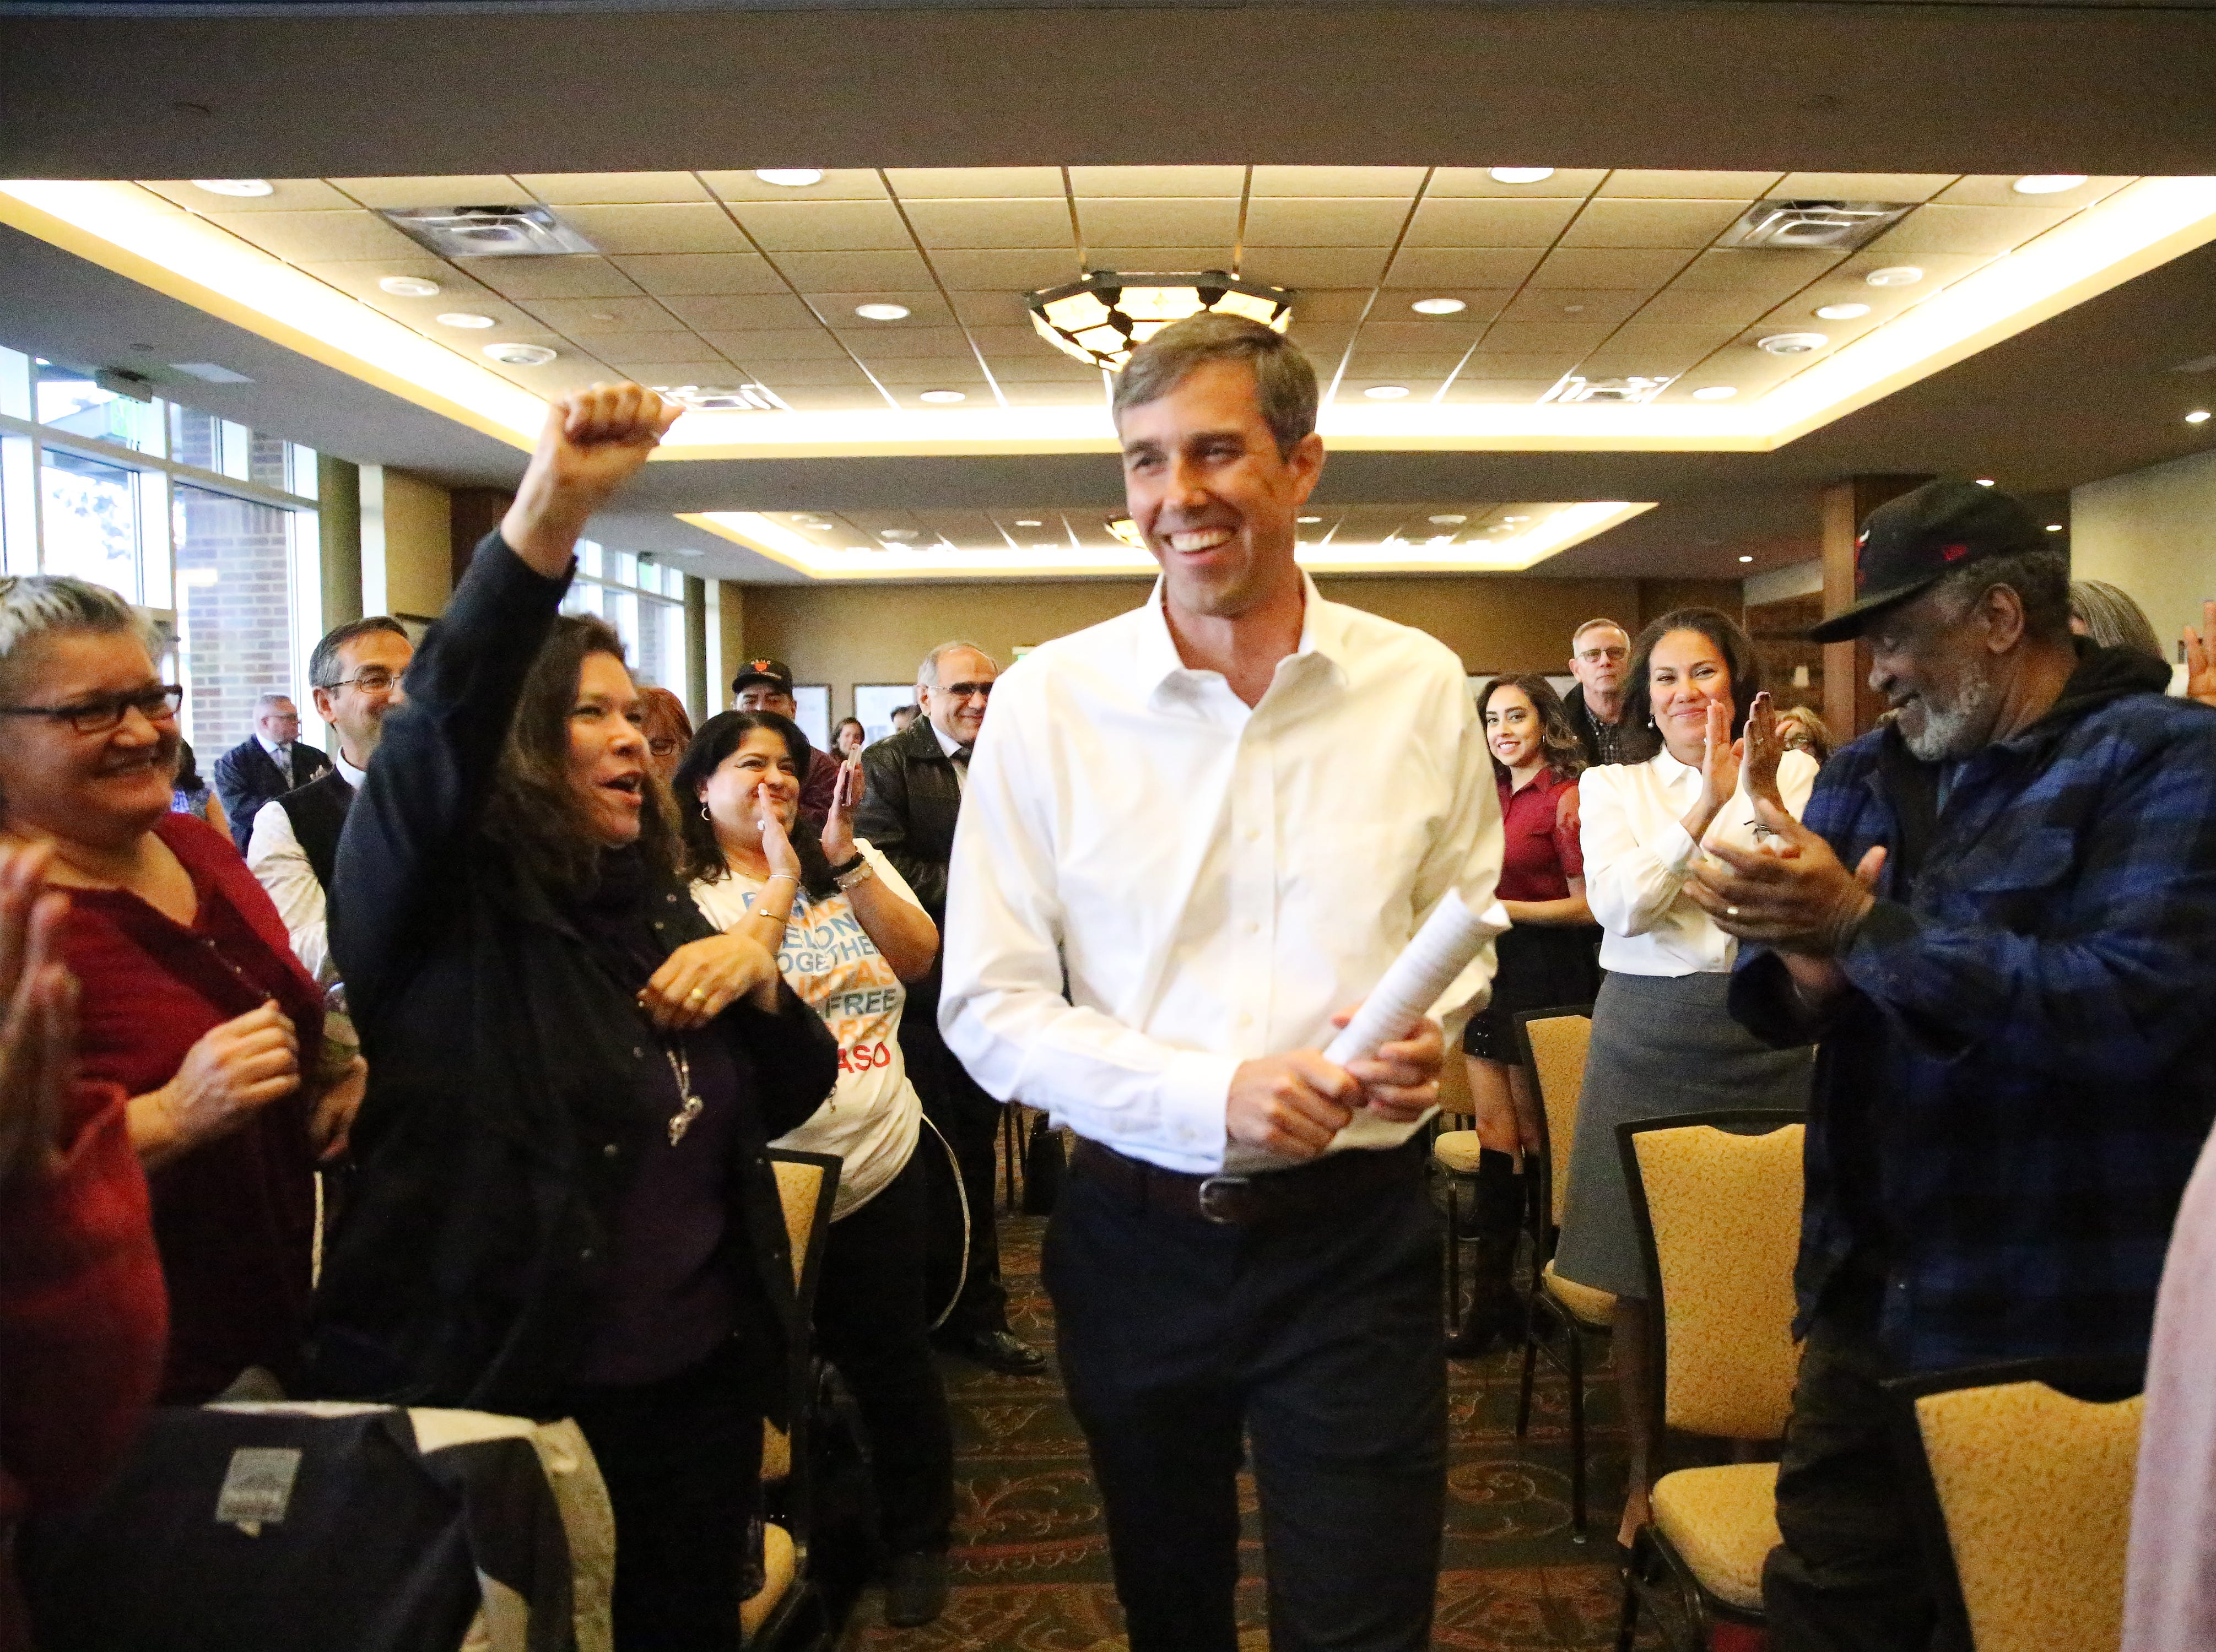 U.S. Rep. Beto O'Rourke walks into his first town hall since the midterm elections to applause from the capacity crowd Monday at the El Paso Community Foundation room in downtown El Paso. O'Rourke introduced his successor, U.S. Rep. elect Veronica Escobar and touched upon a variety of issues and answered a variety of questions, from migrants at the border to gun control legislation to his future plans.